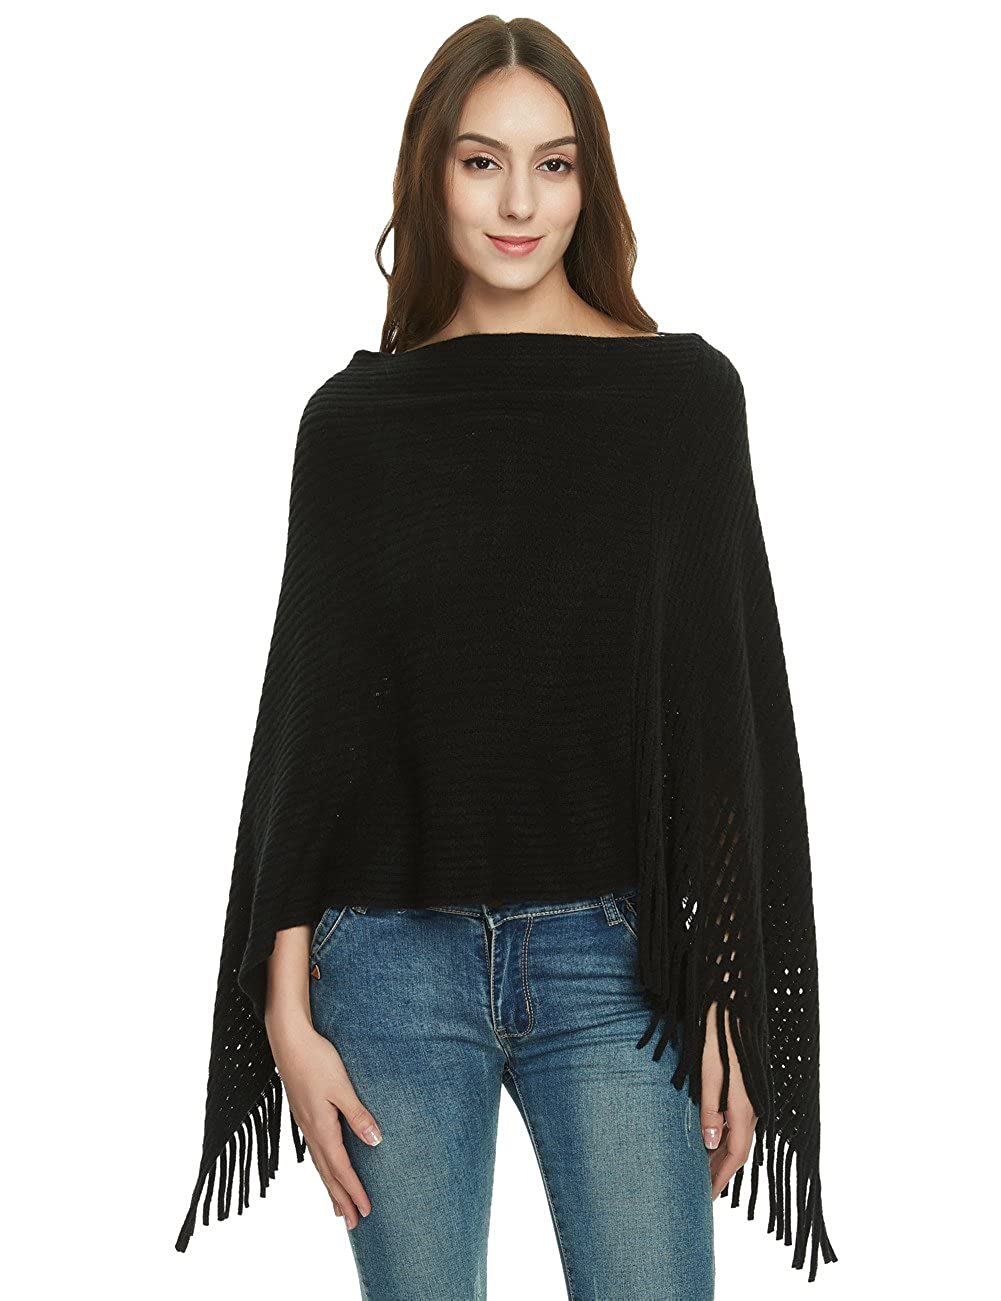 4bb6bbec11 ... create and distribute beautiful ponchos made from the highest quality  of materials. We serve a global base of customers with clothing ...